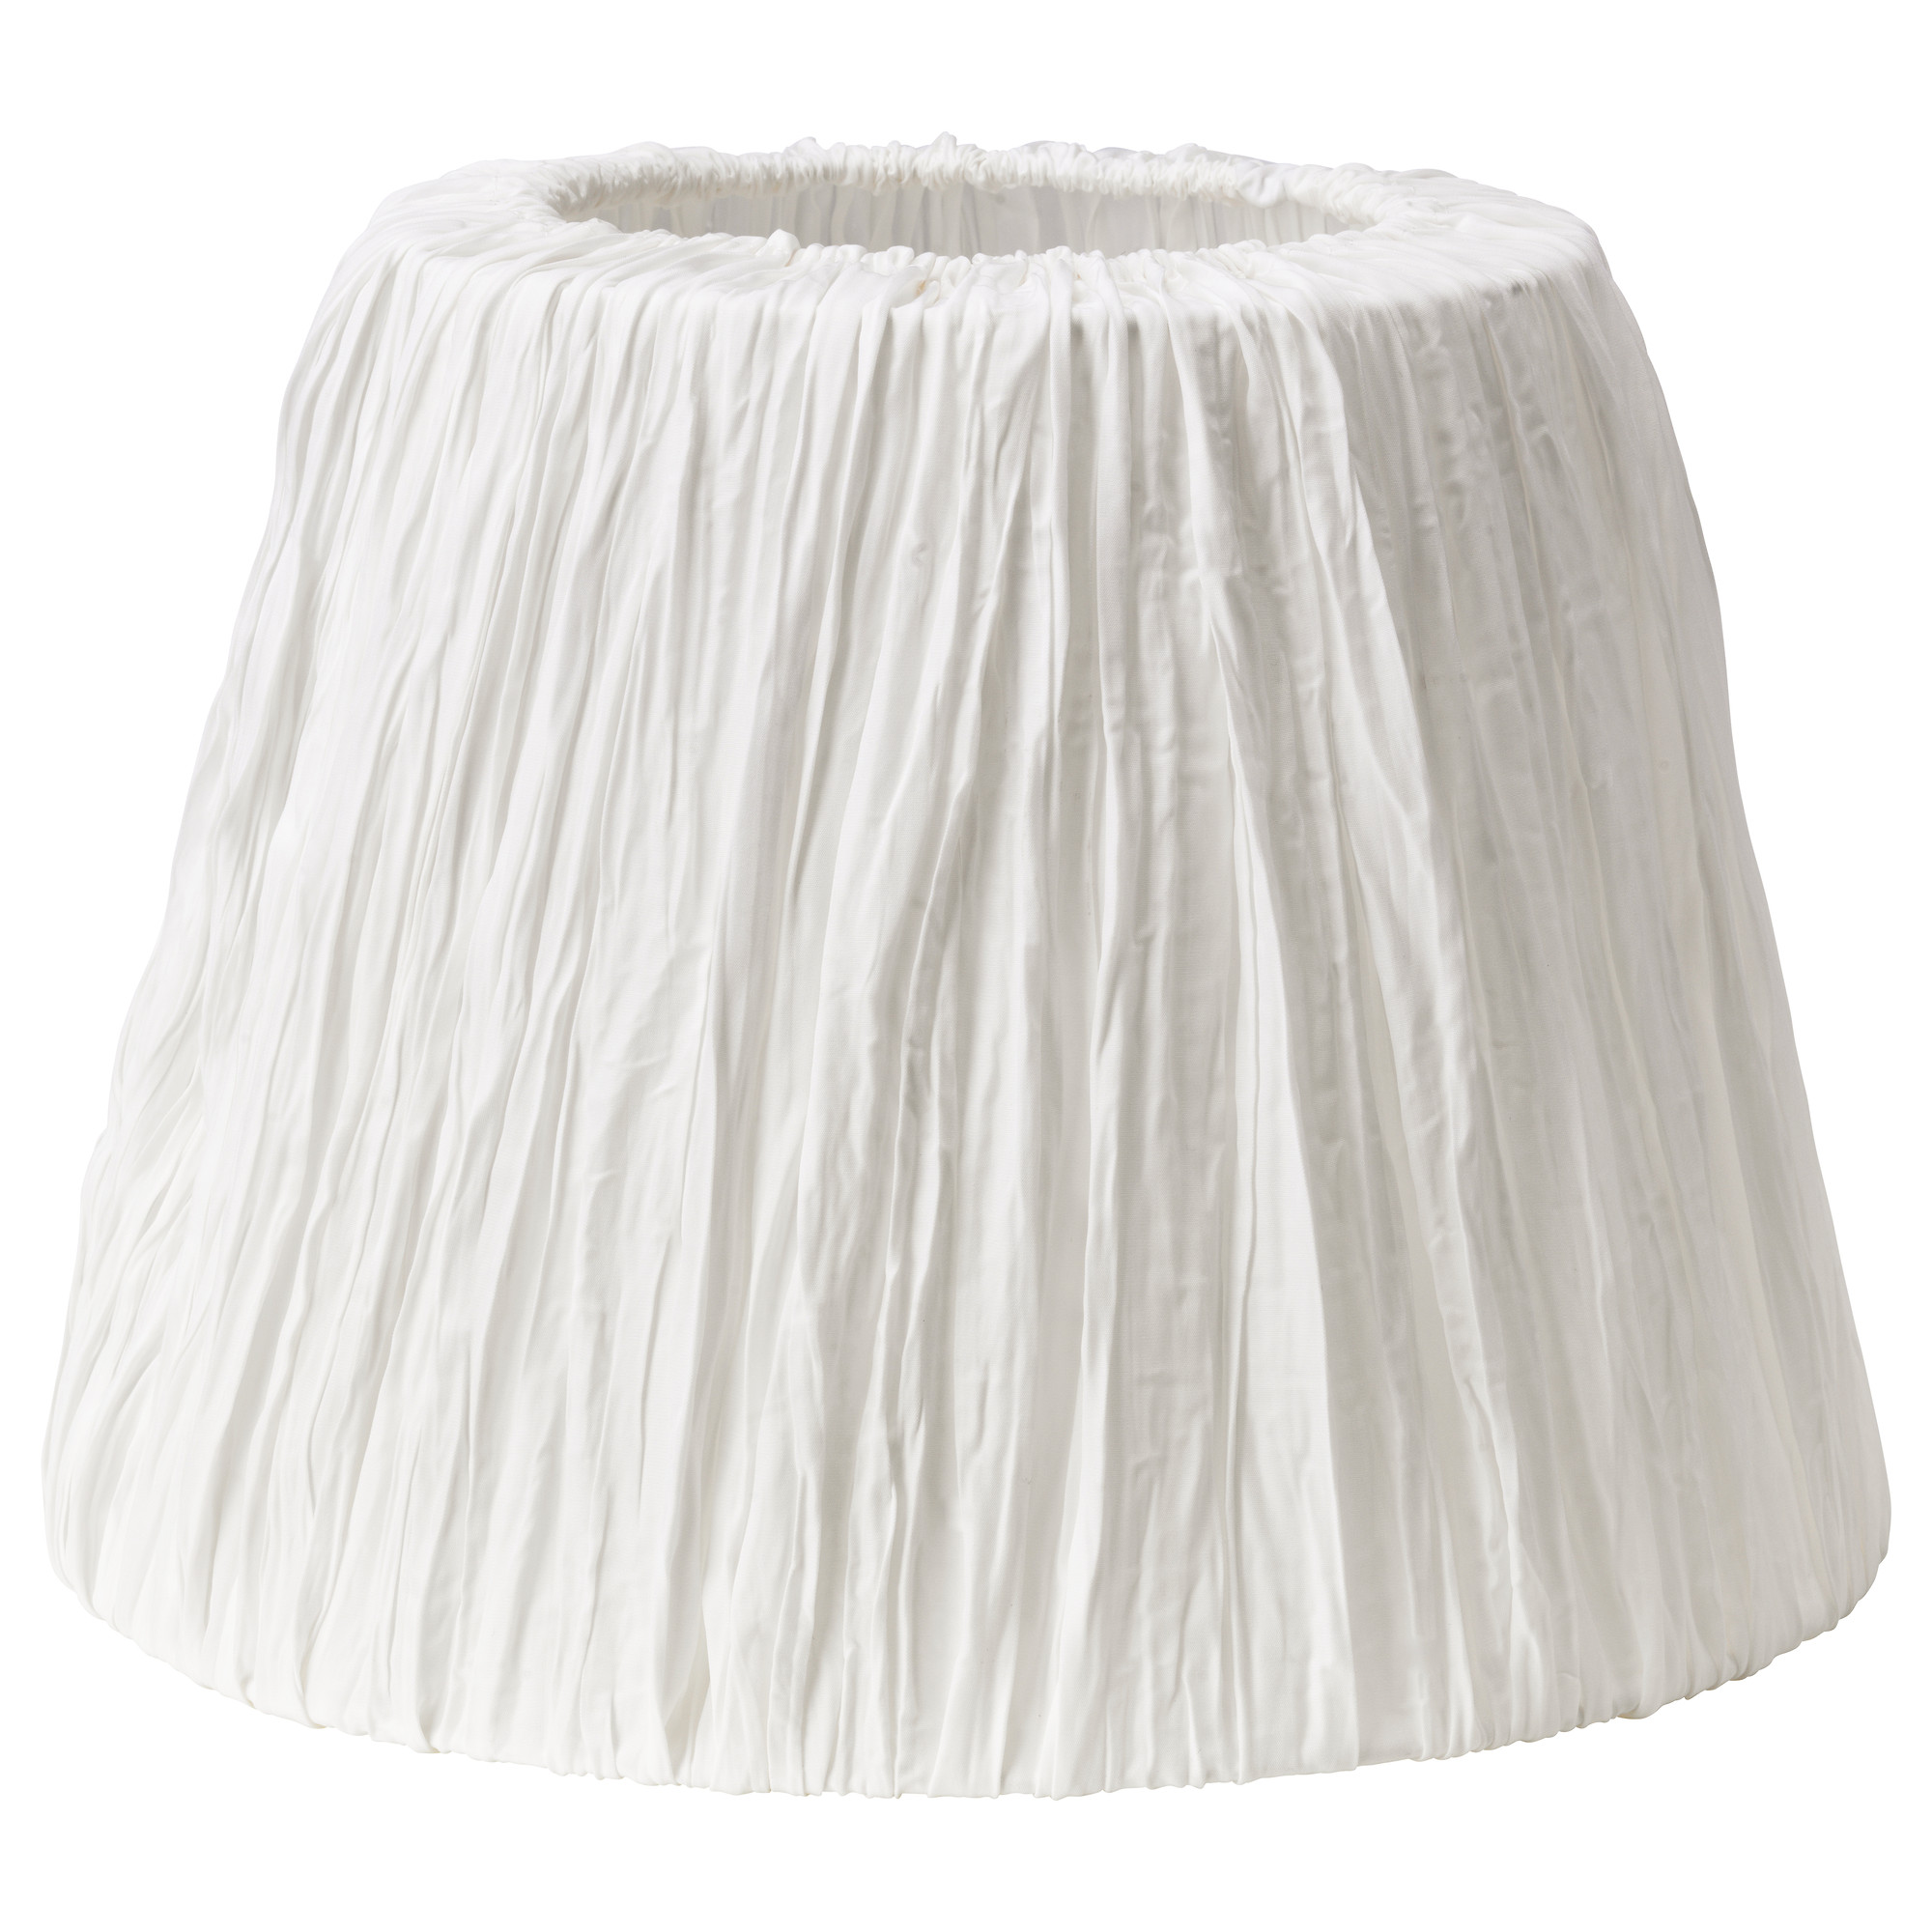 HEMSTA lamp shade, white Height: 10